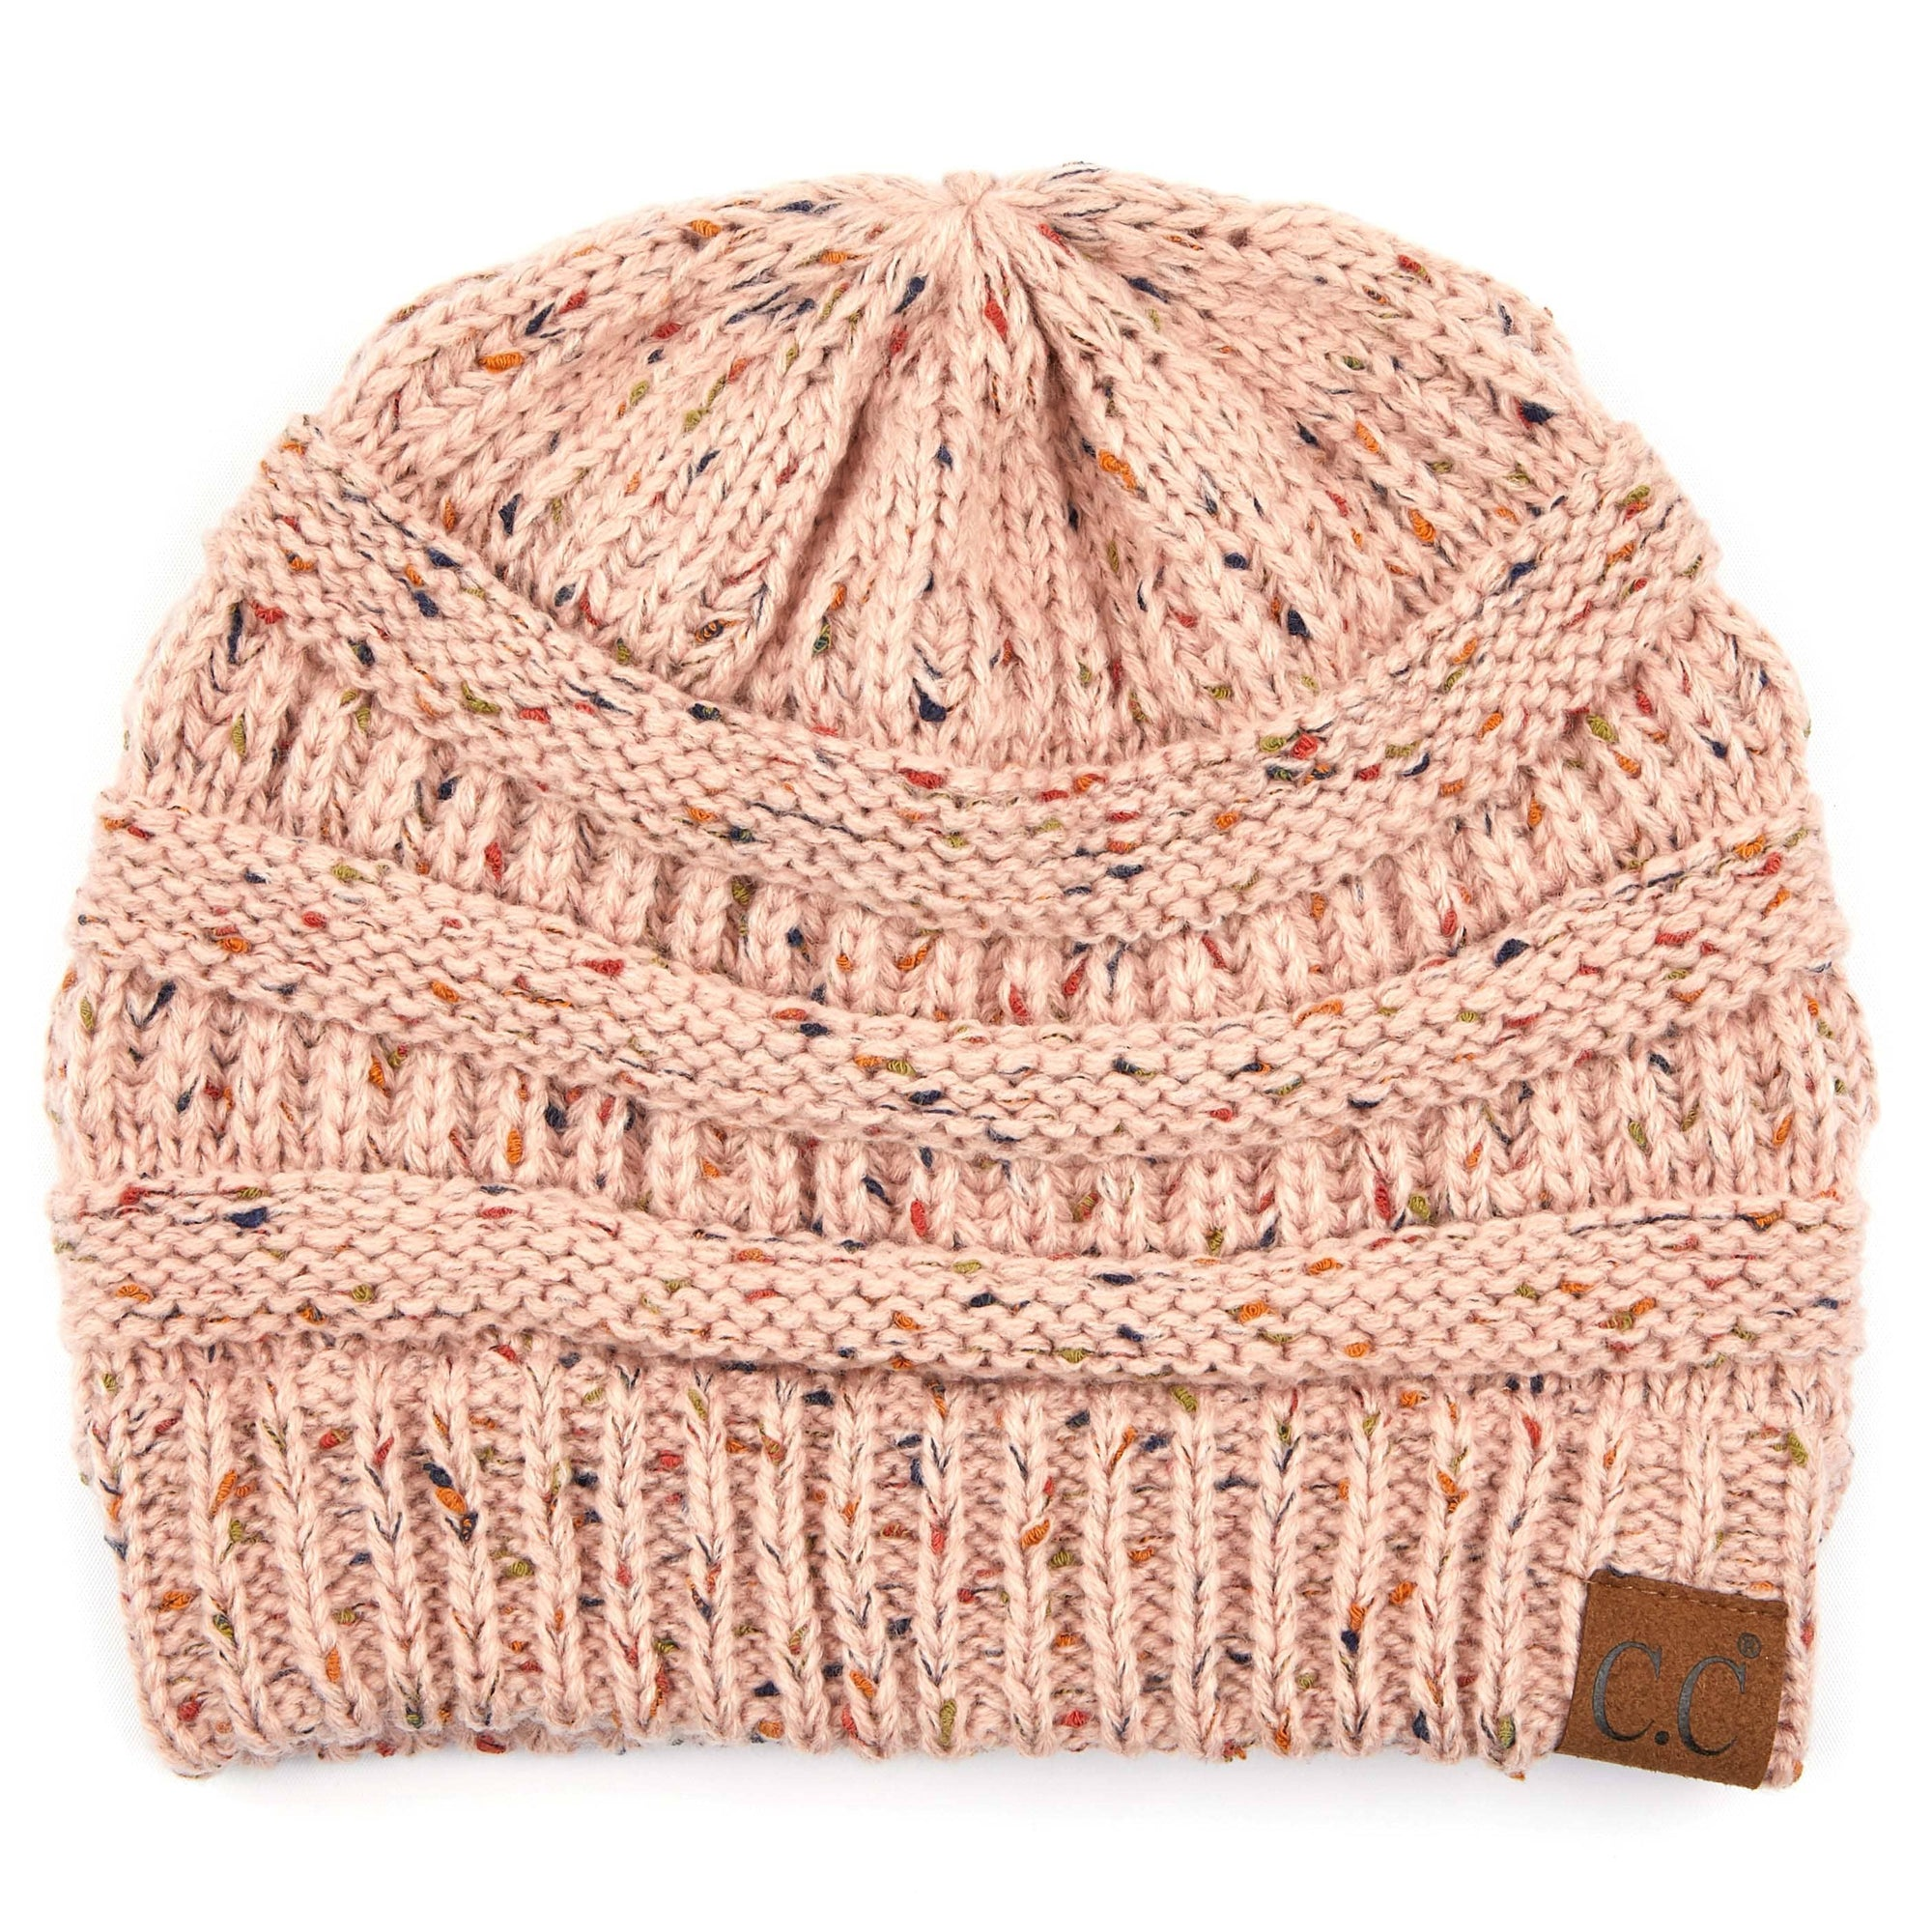 Cable Knit Confetti Hat